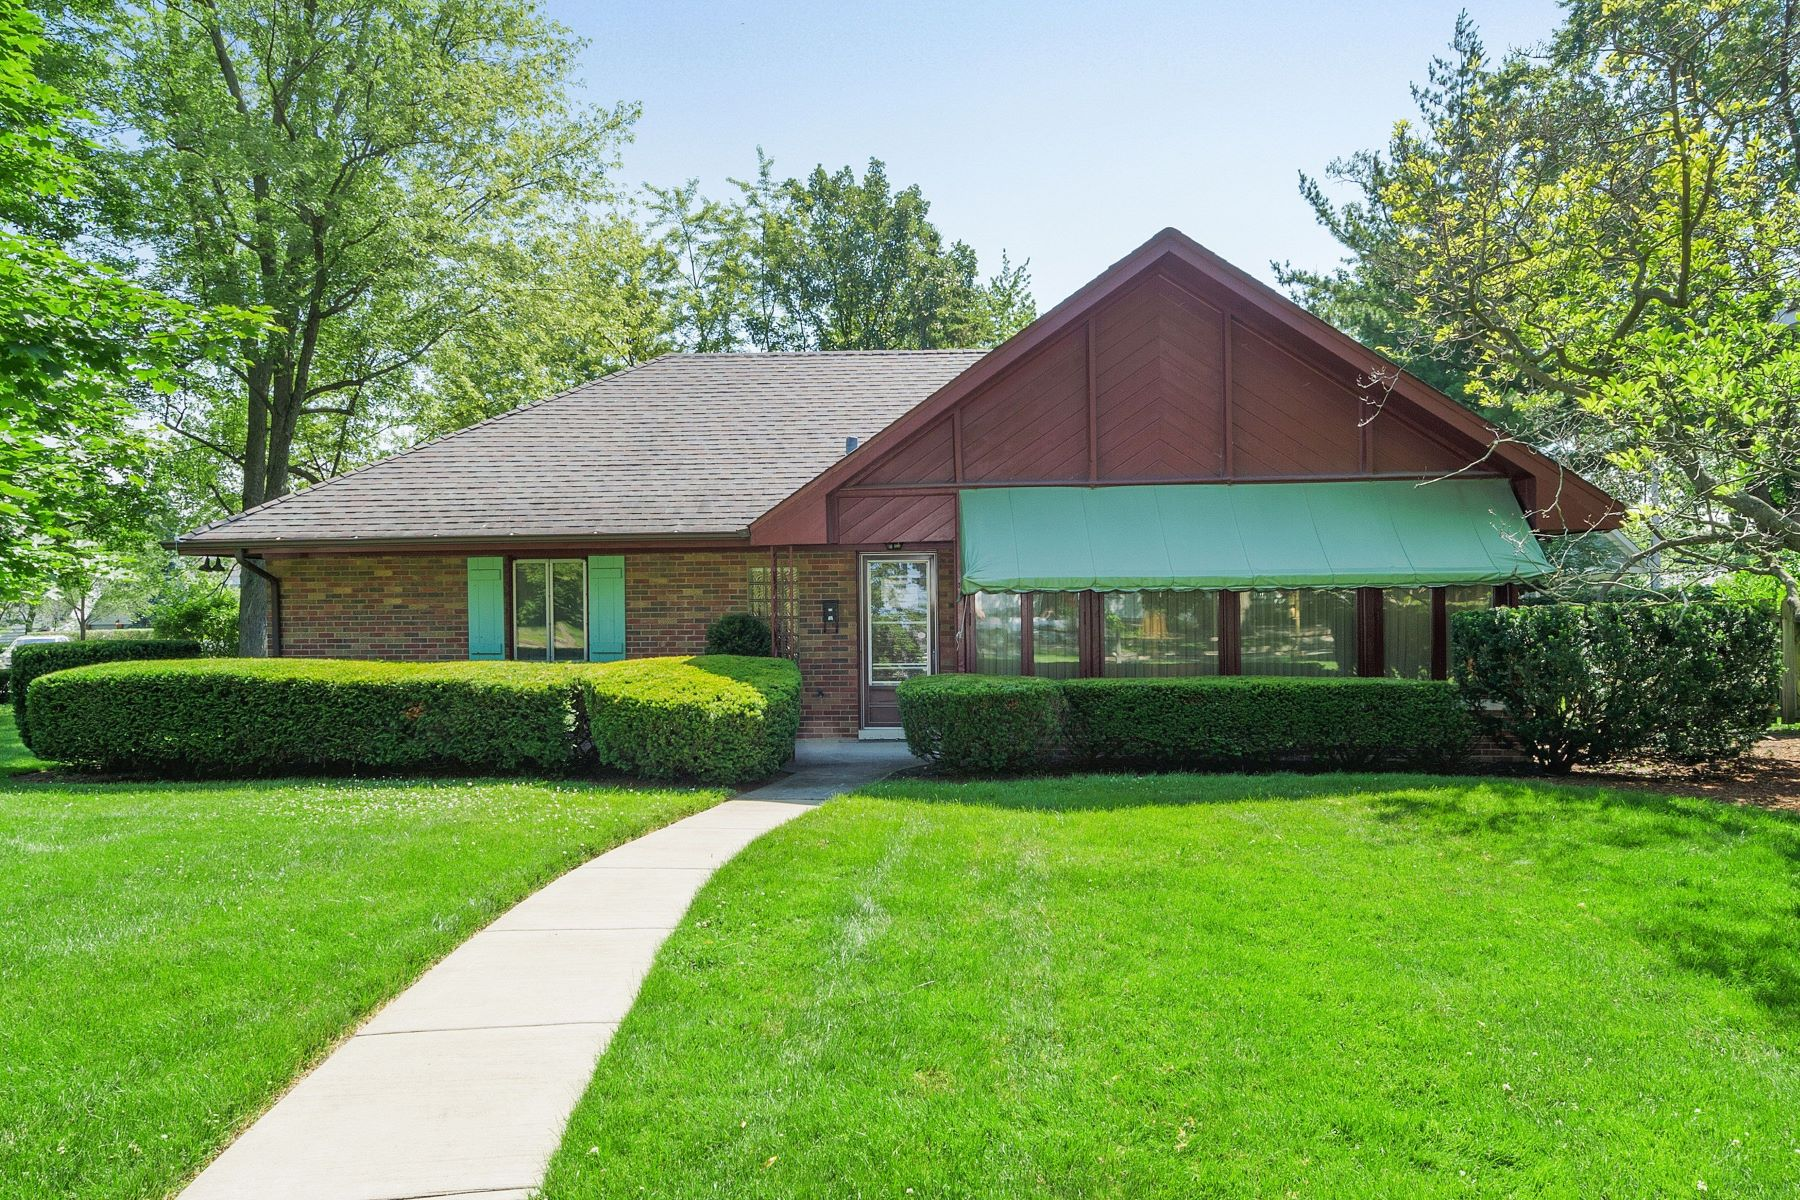 Single Family Homes for Active at Midcentury California Ranch 110 The Lane Hinsdale, Illinois 60521 United States